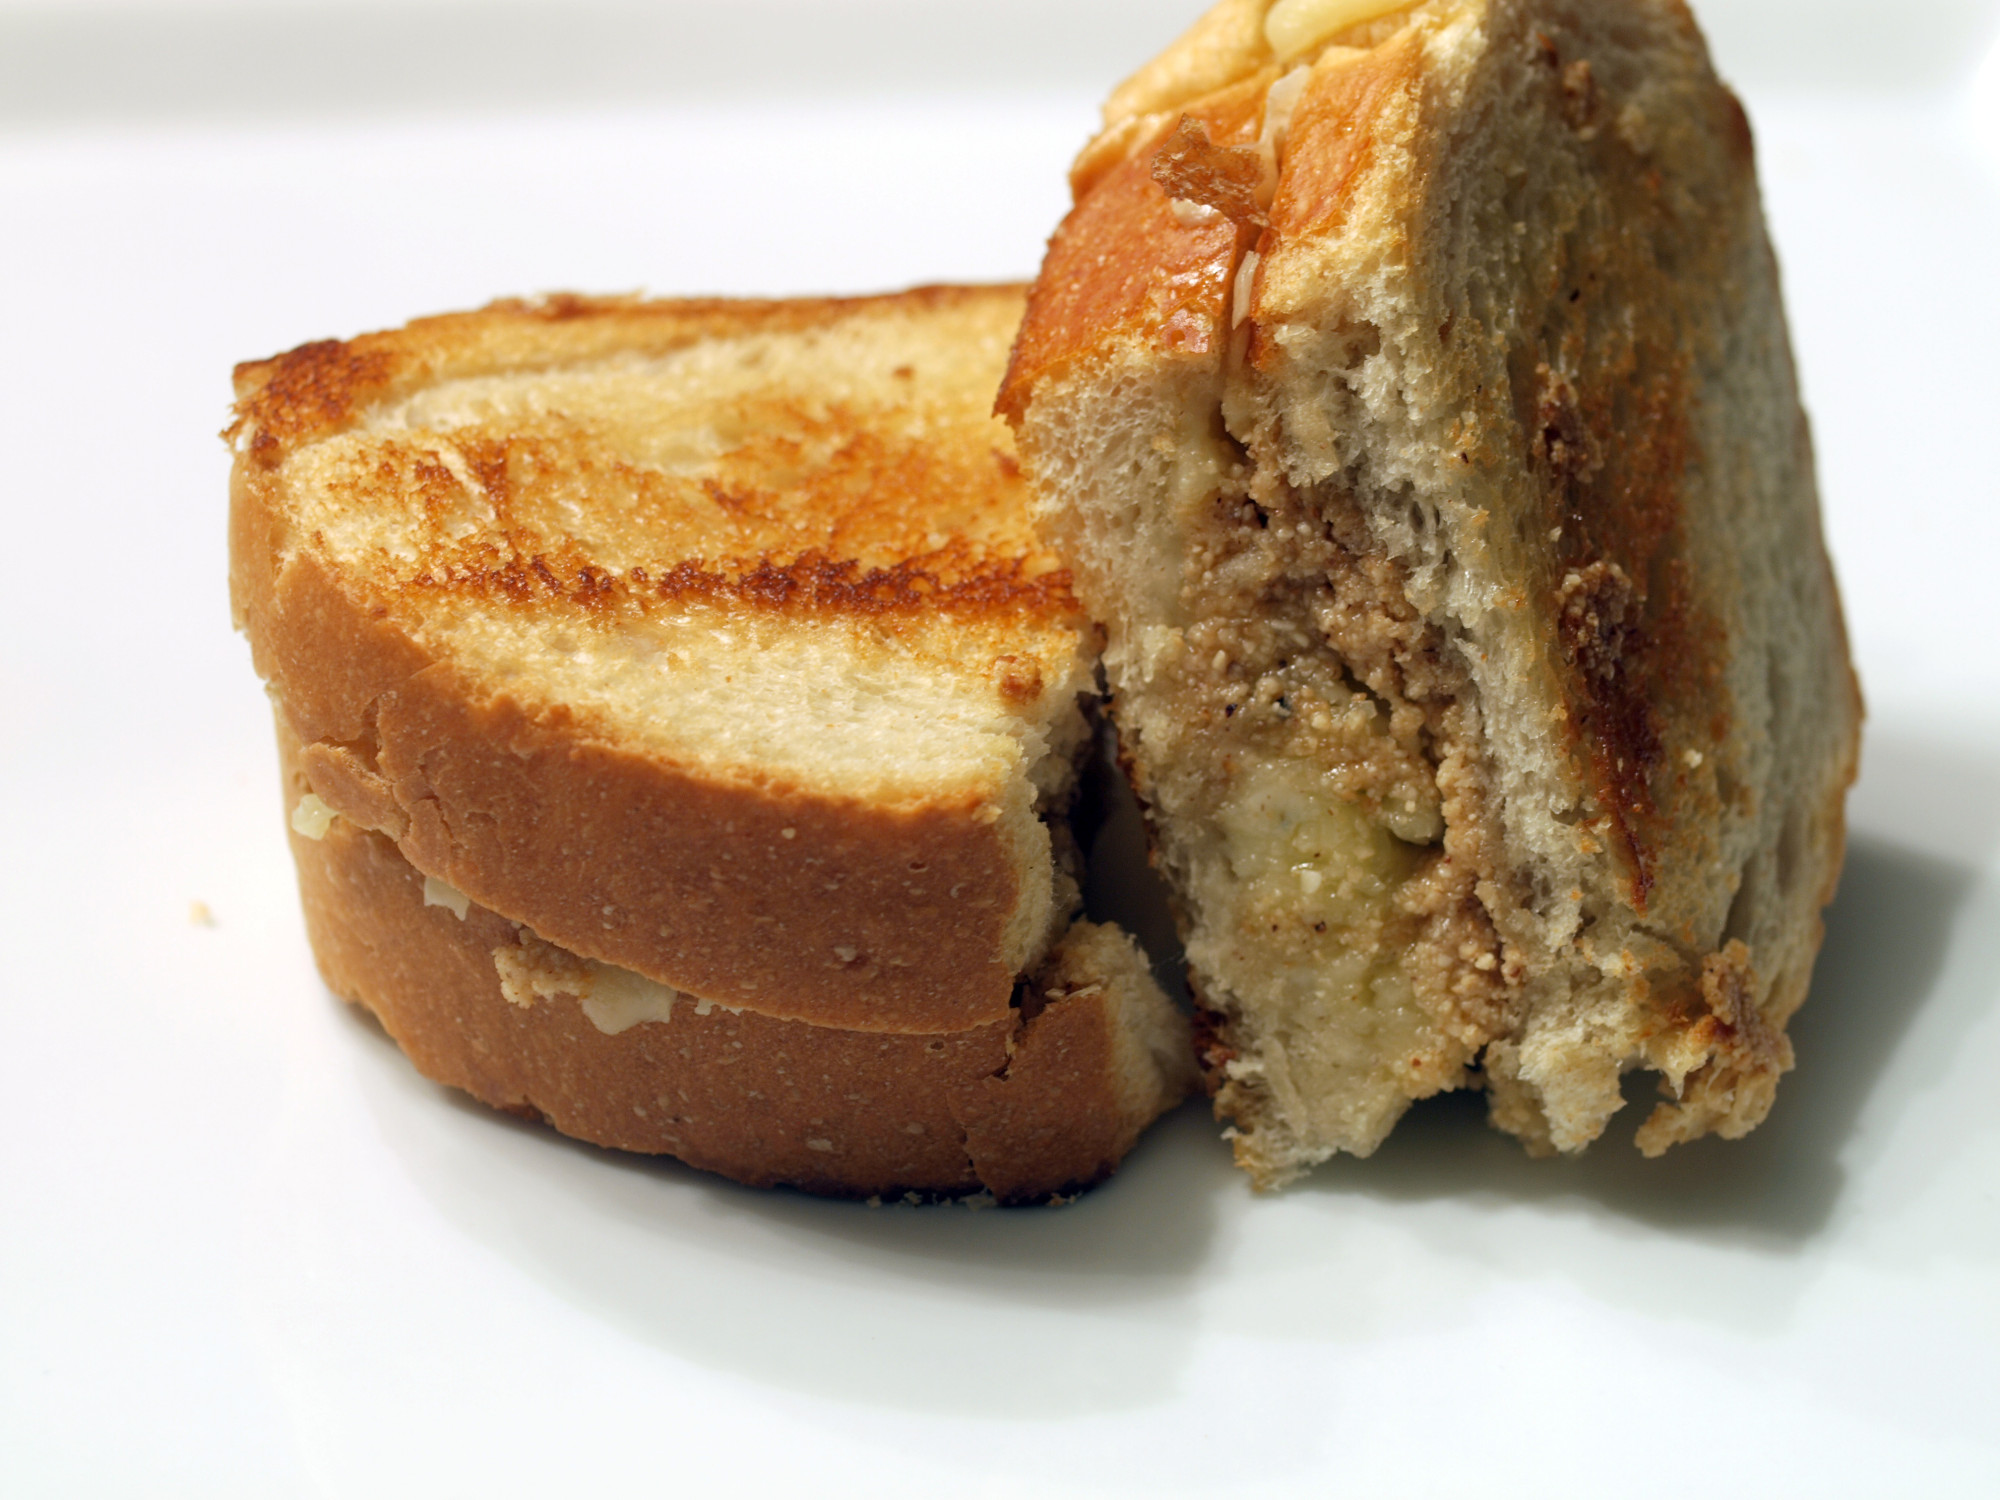 Gruyere & Gorgonzola w/Hazelnut Butter Grilled Cheese